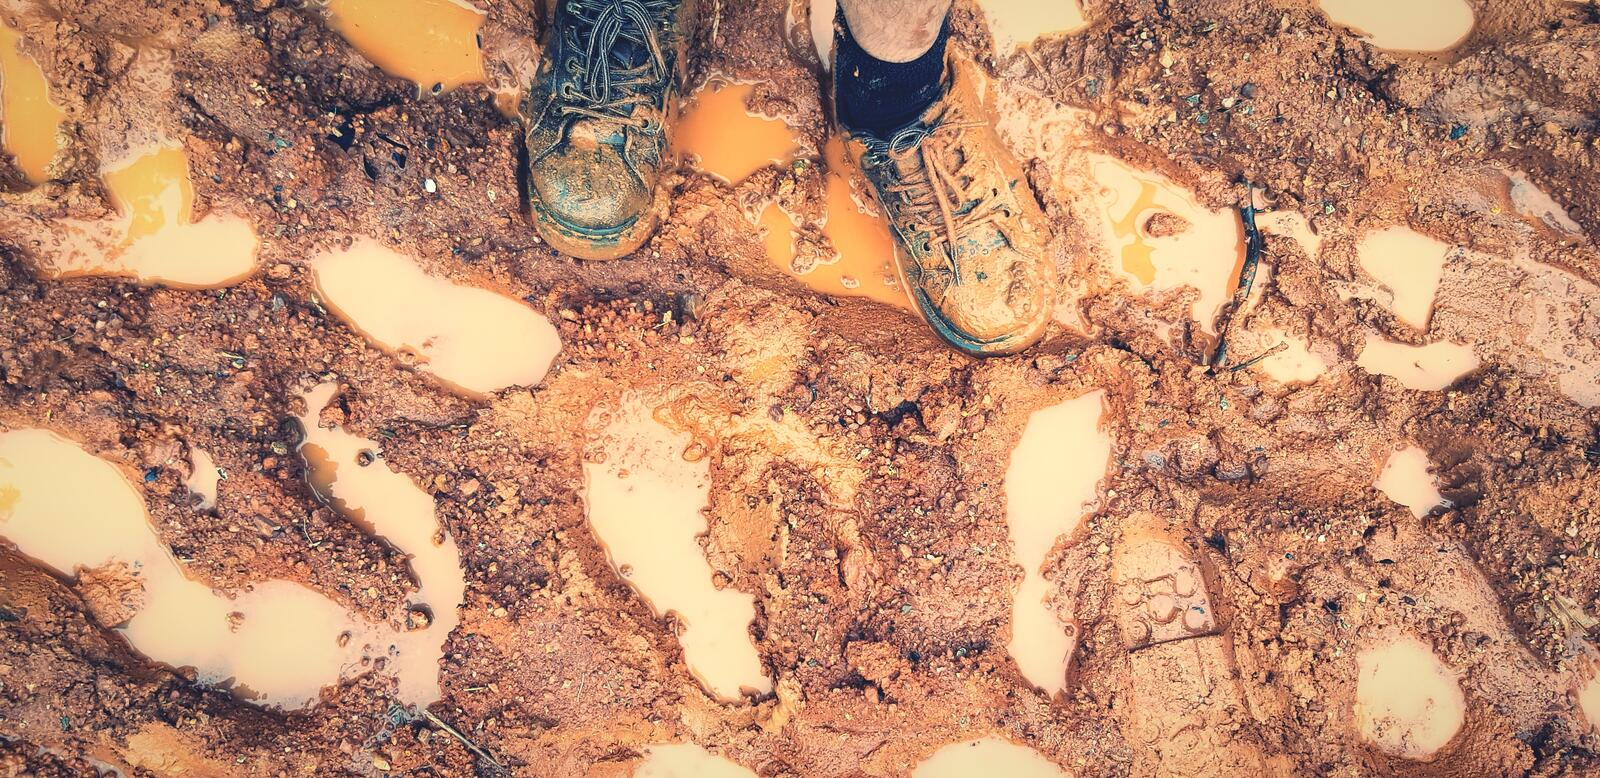 Top view of man legs standing on  brown mud floor filled with many footprint and water after raining day royalty free stock image